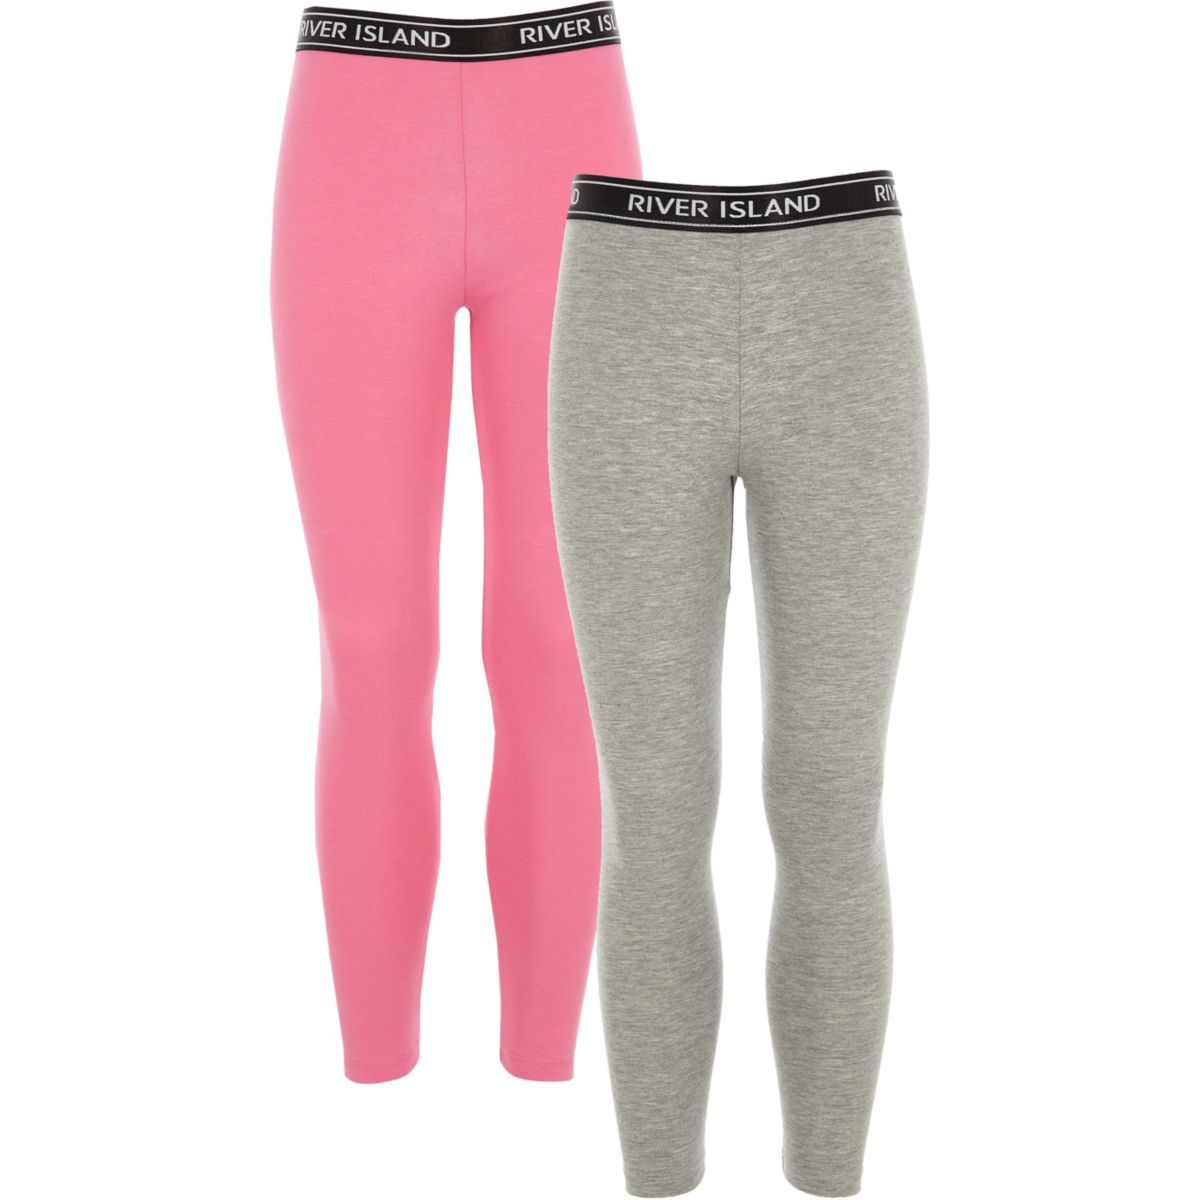 RI – Lot de leggings gris et rose pour fille